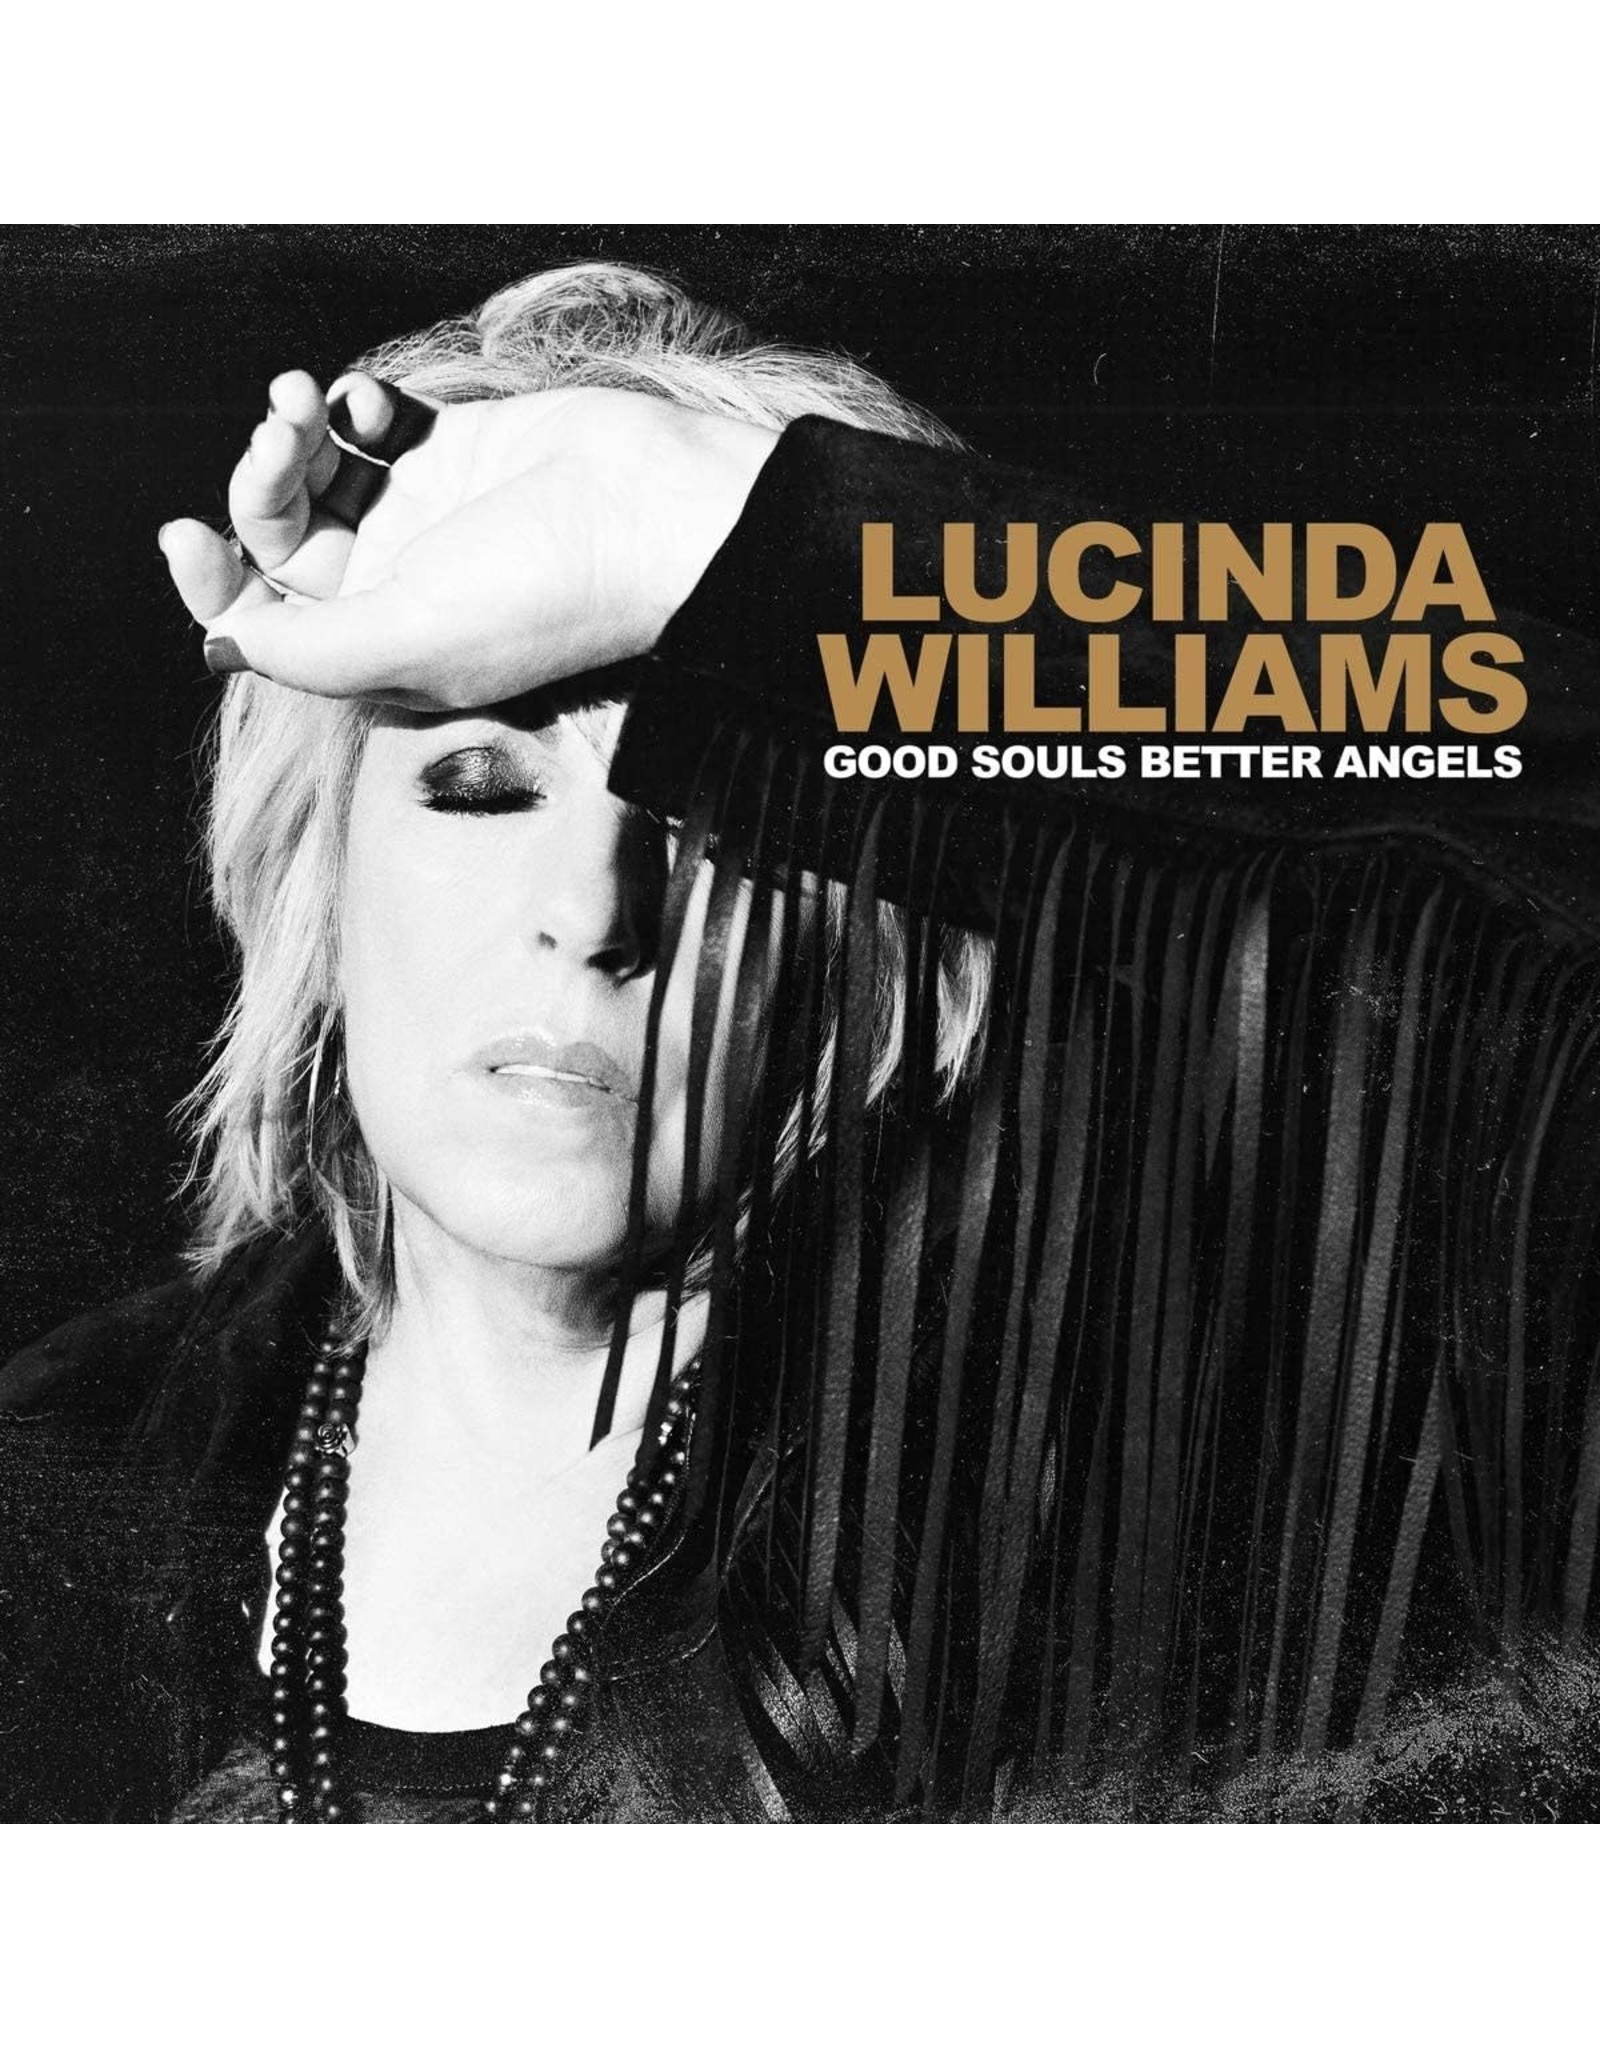 Lucinda Williams - Good Souls Better Angels (Deluxe Edition)